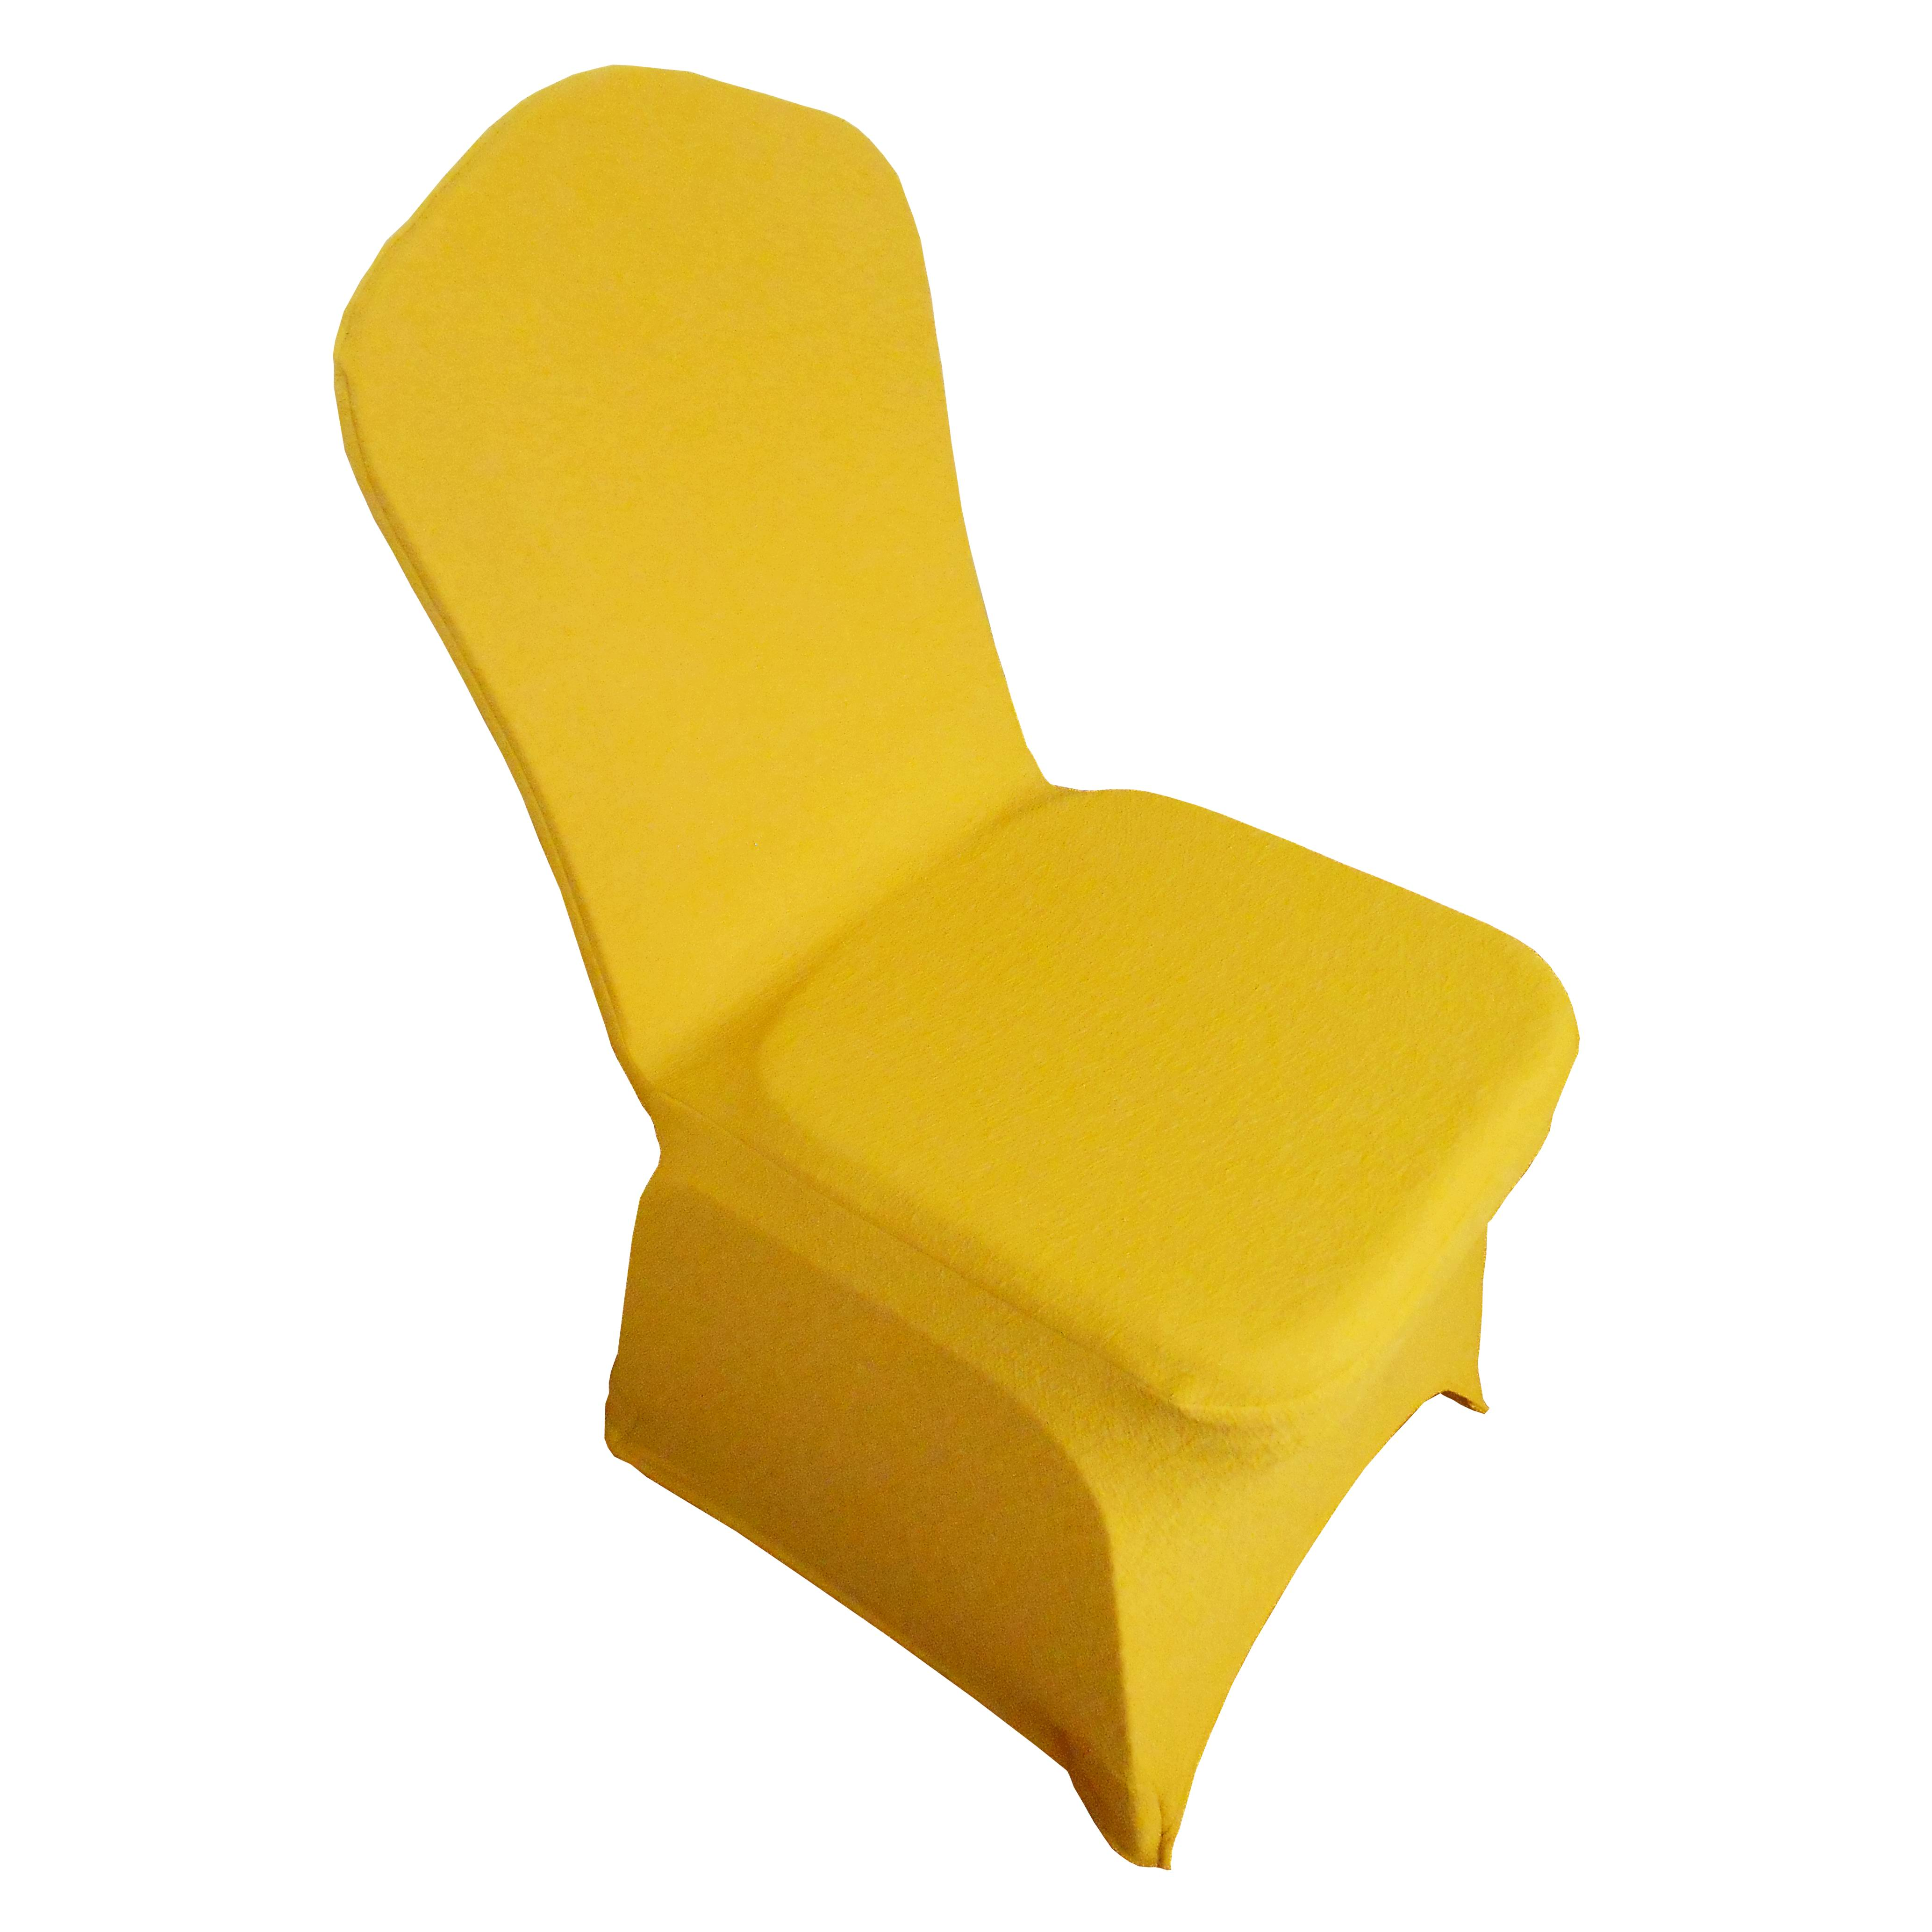 yellow spandex chair sashes mid century modern chairs leather guangzhou seechin hotel supplies production co ltd double layer cover